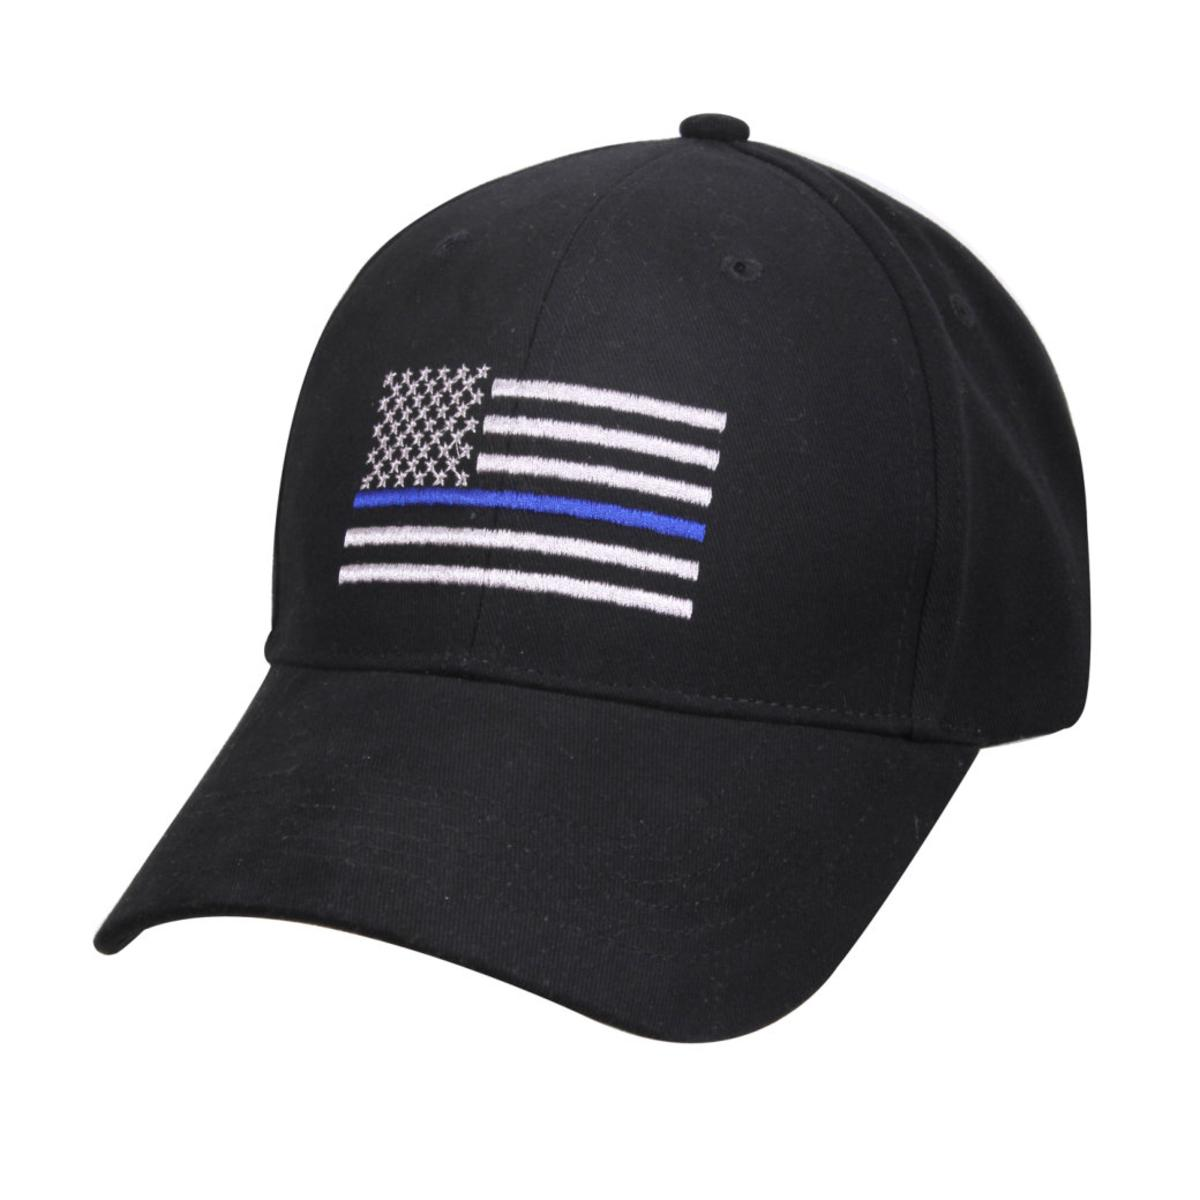 Details about Rothco Thin Blue Line Flag Low Profile Tactical Cap For  Police 126ba0fe646